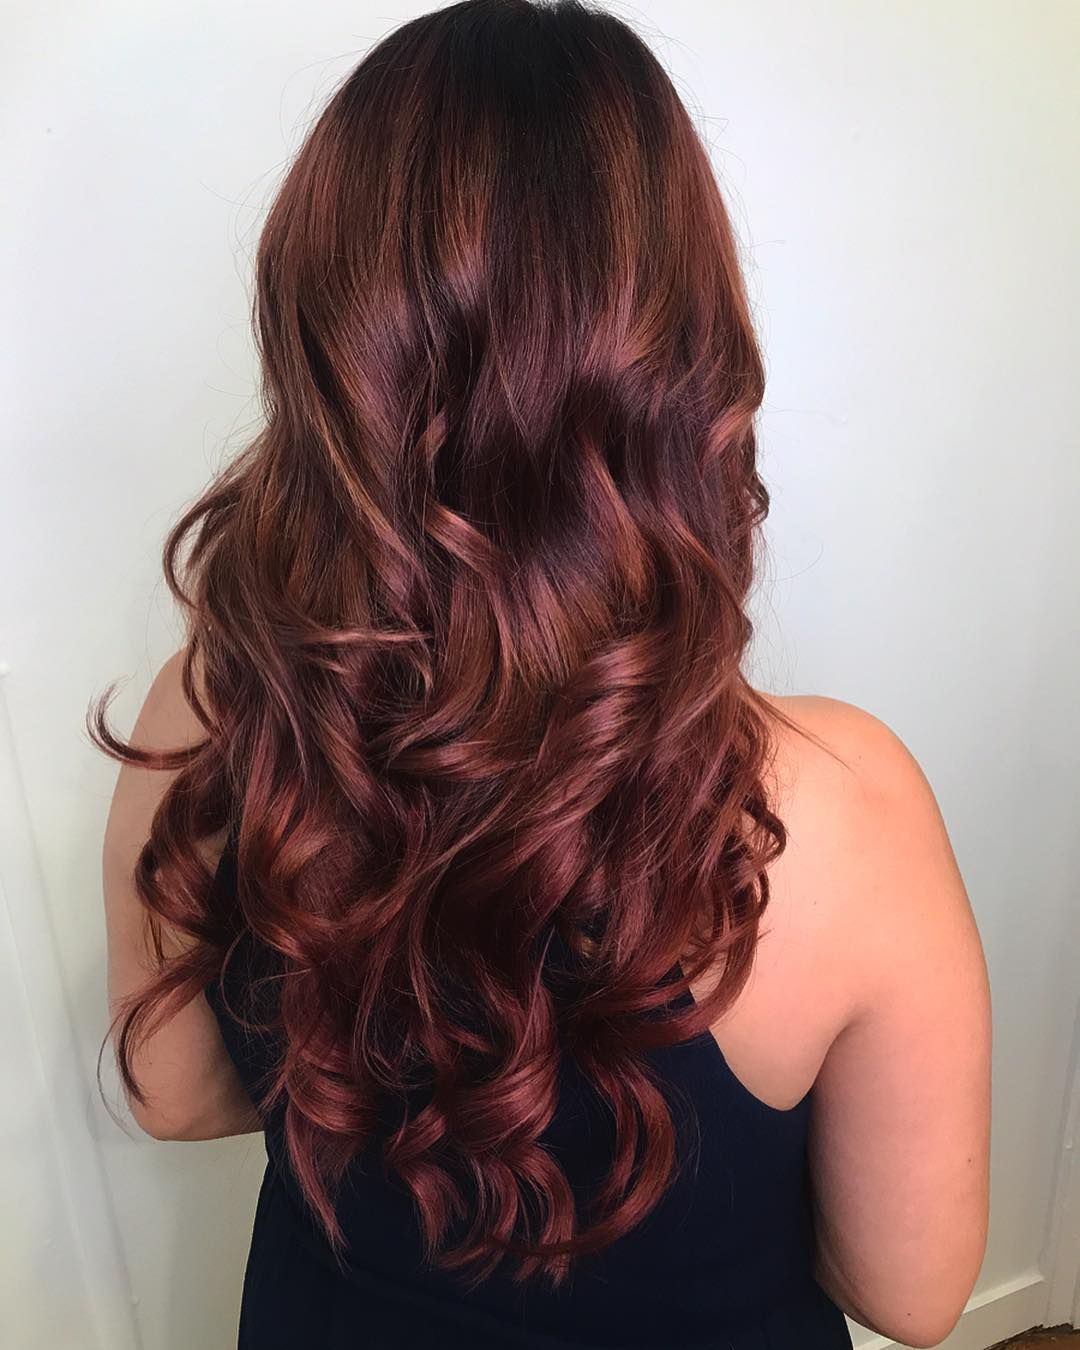 We Are Just Loving The Amazing Hair Extensions For Our Clients